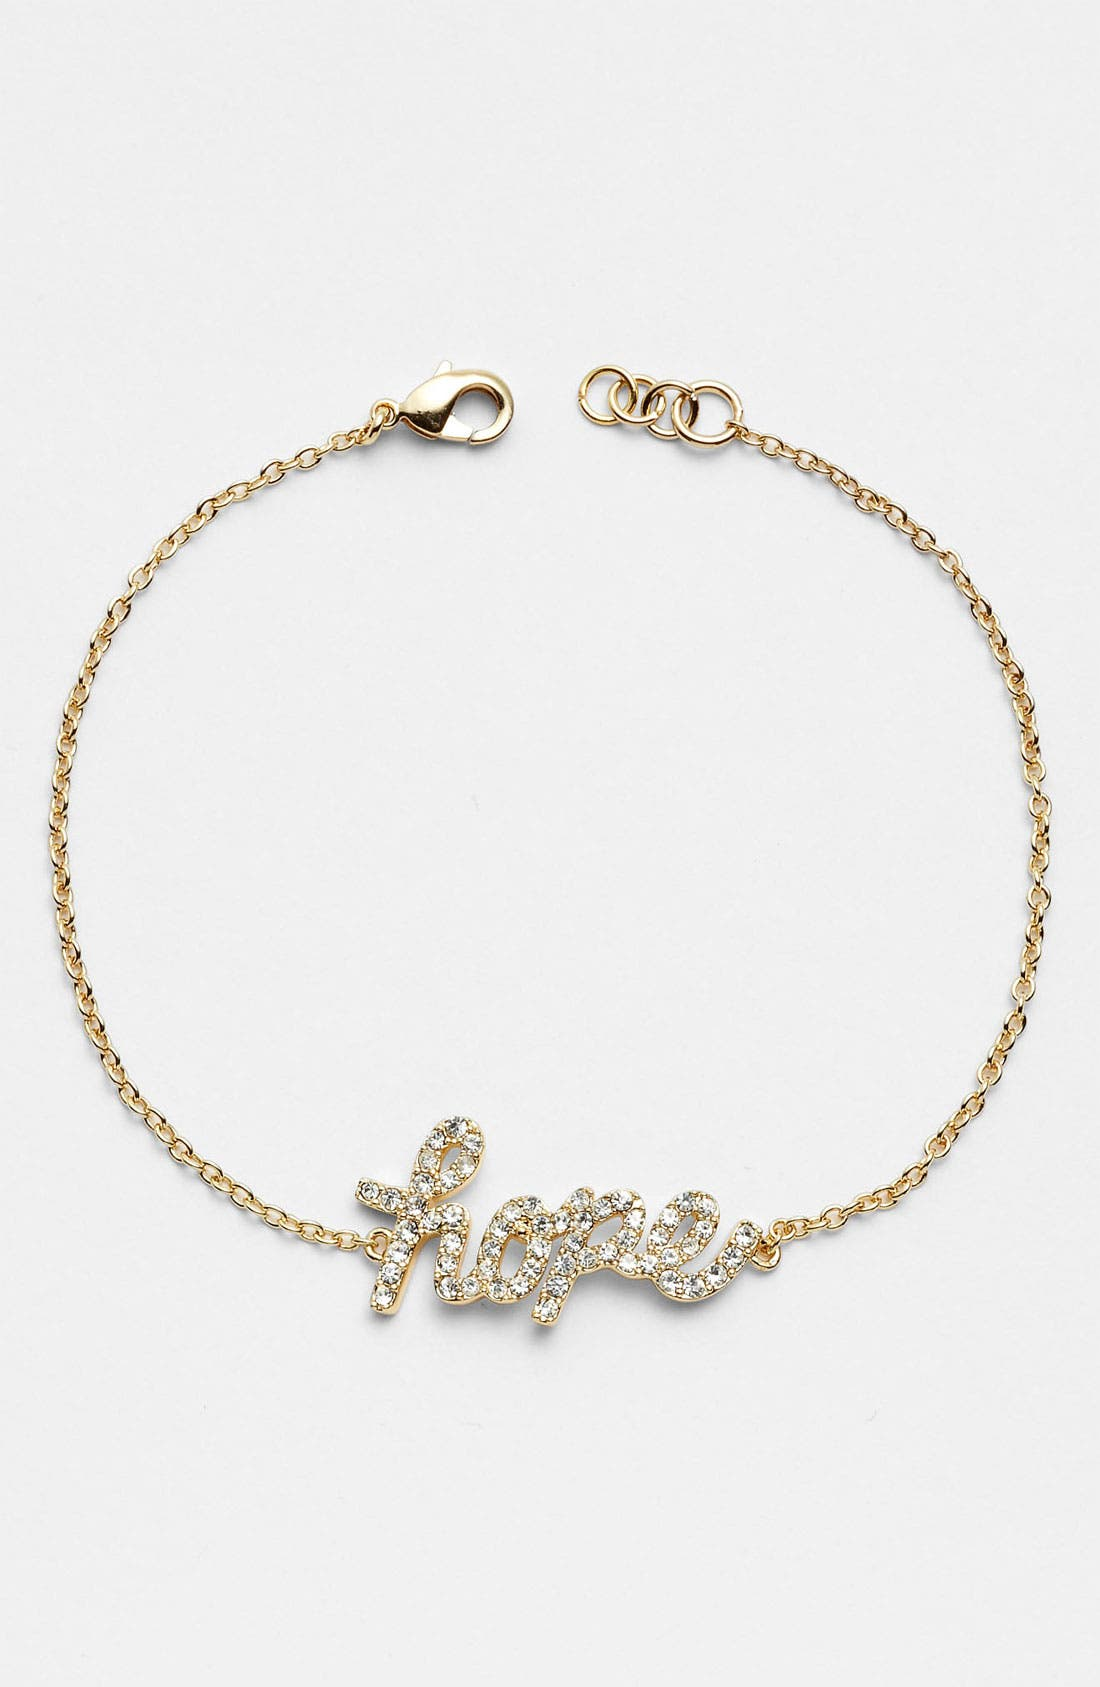 Main Image - Ariella Collection 'Messages - Hope' Script Station Bracelet